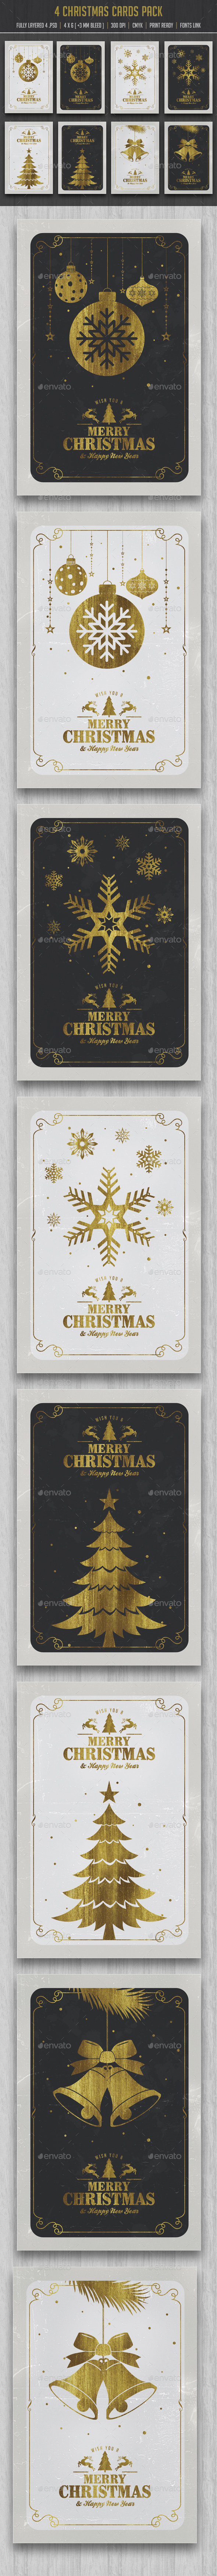 Christmas Cards Pack - Cards & Invites Print Templates